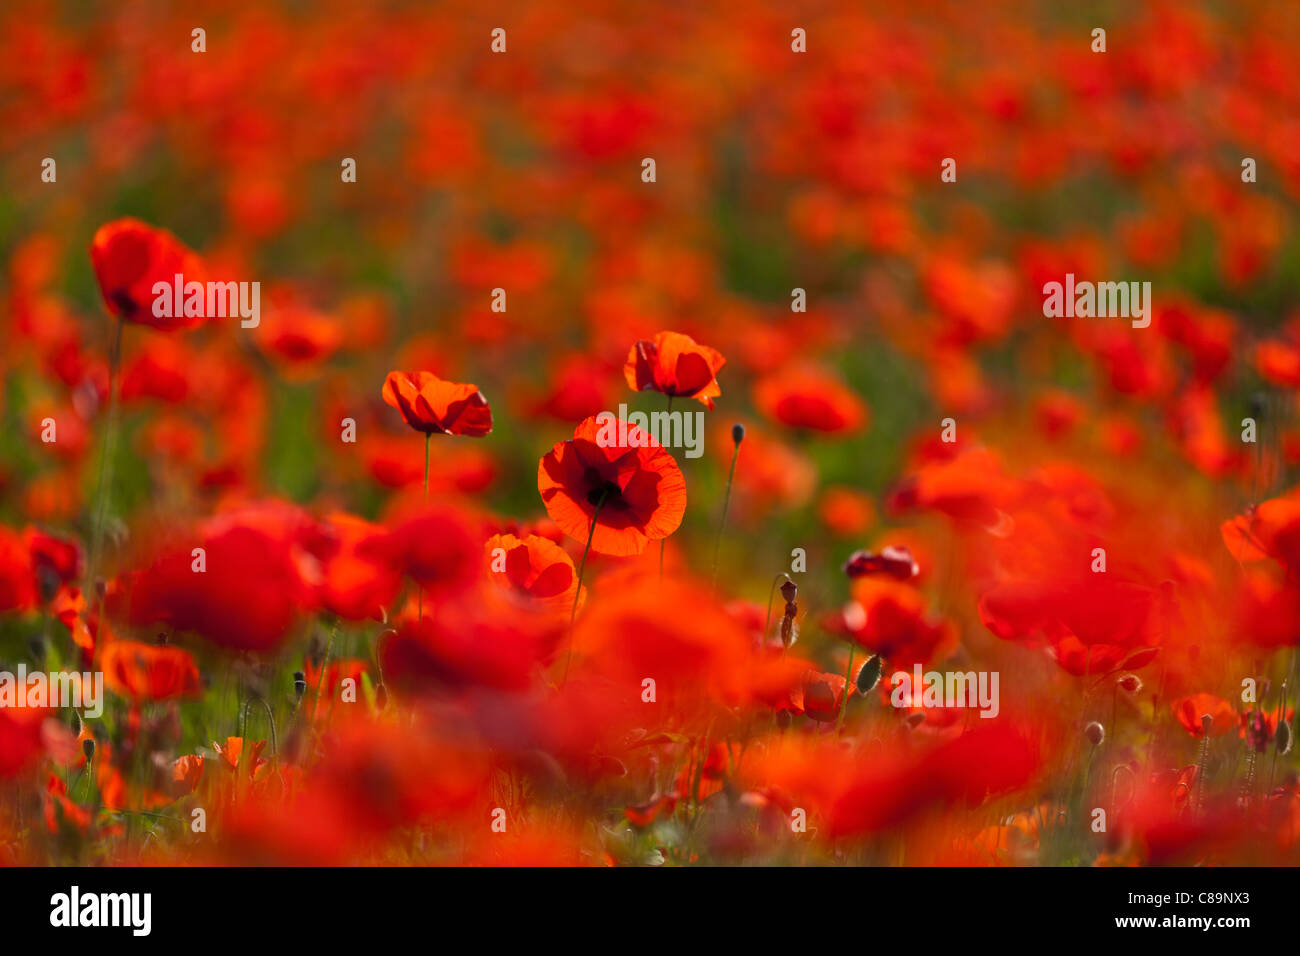 Italy, Tuscany, Crete, View of red poppy field - Stock Image